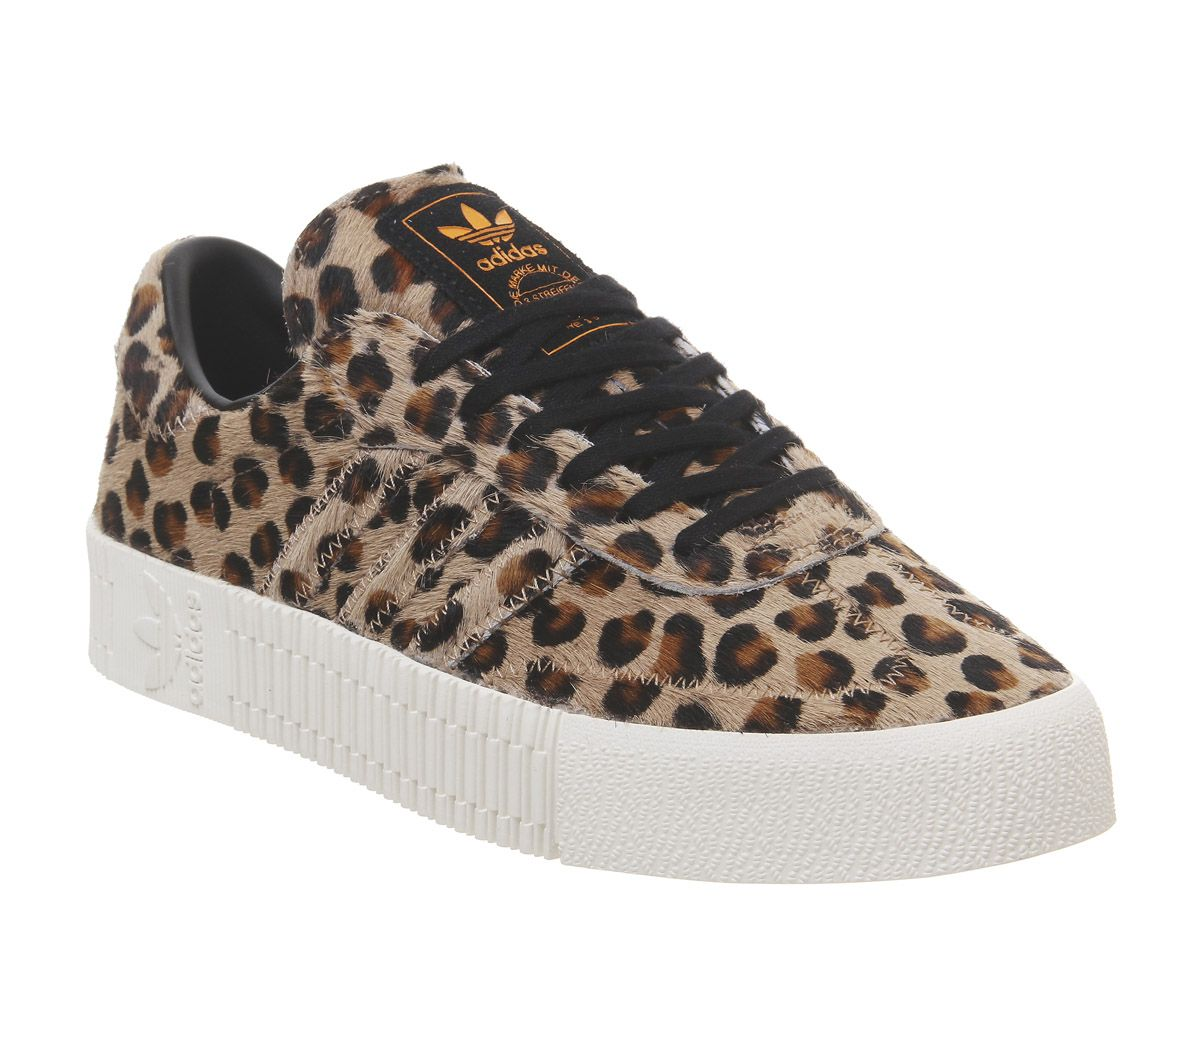 58e5a0dd adidas Samba Rose Trainers Leopard Black Off White - Hers trainers